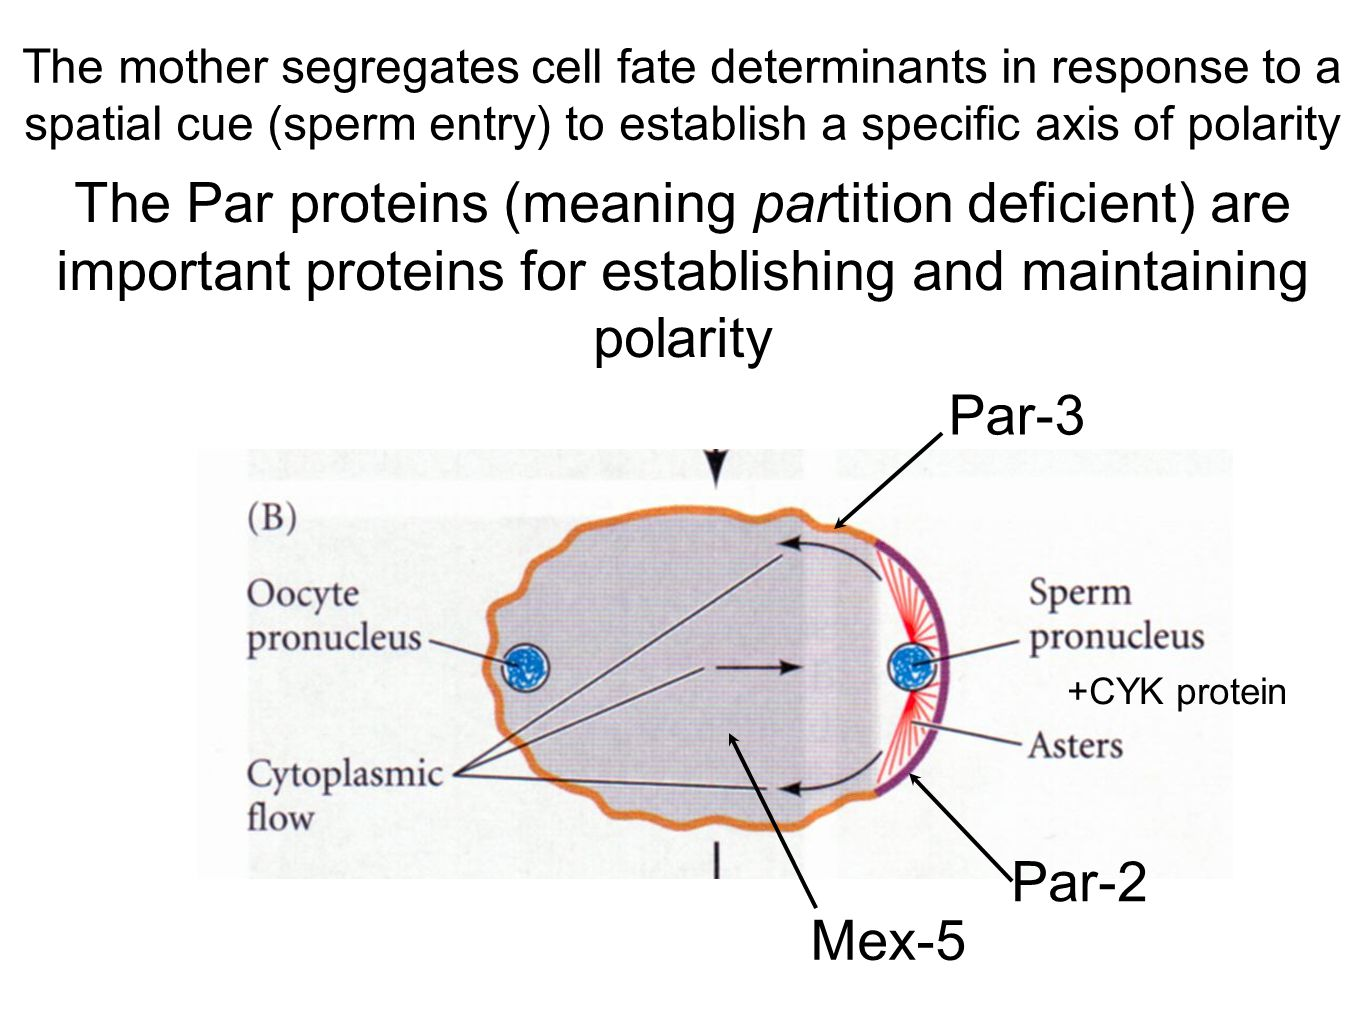 The mother segregates cell fate determinants in response to a spatial cue (sperm entry) to establish a specific axis of polarity